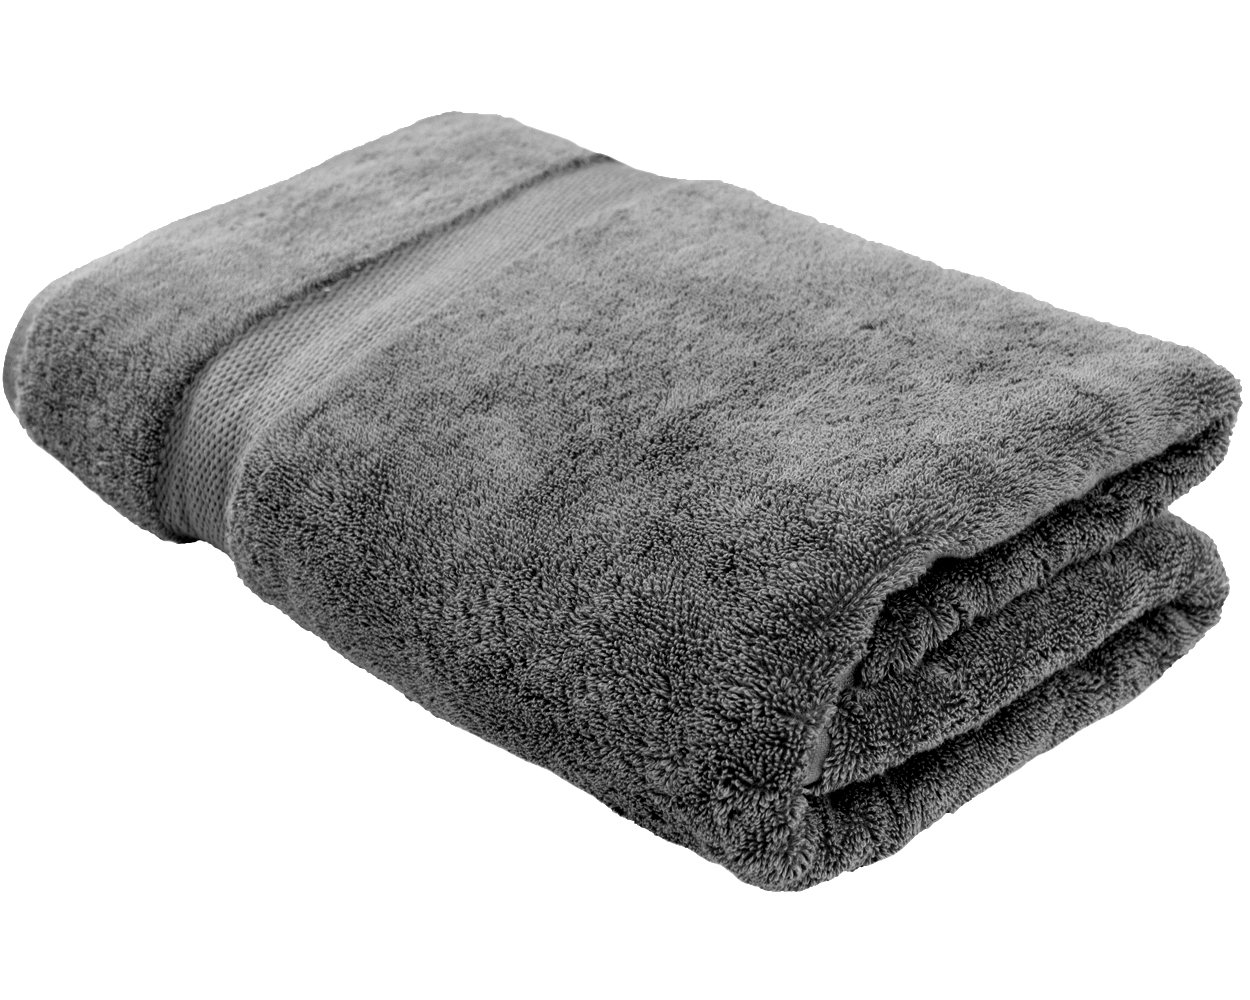 Cotton & Calm Exquisitely Plush and Soft Oversized Bathsheet Towel, Grey - 1 Extra Large Bath Towel (35'' x 70'') - Spa Resort and Hotel Quality, Super Absorbent 100% Cotton Luxury Bathroom Towels